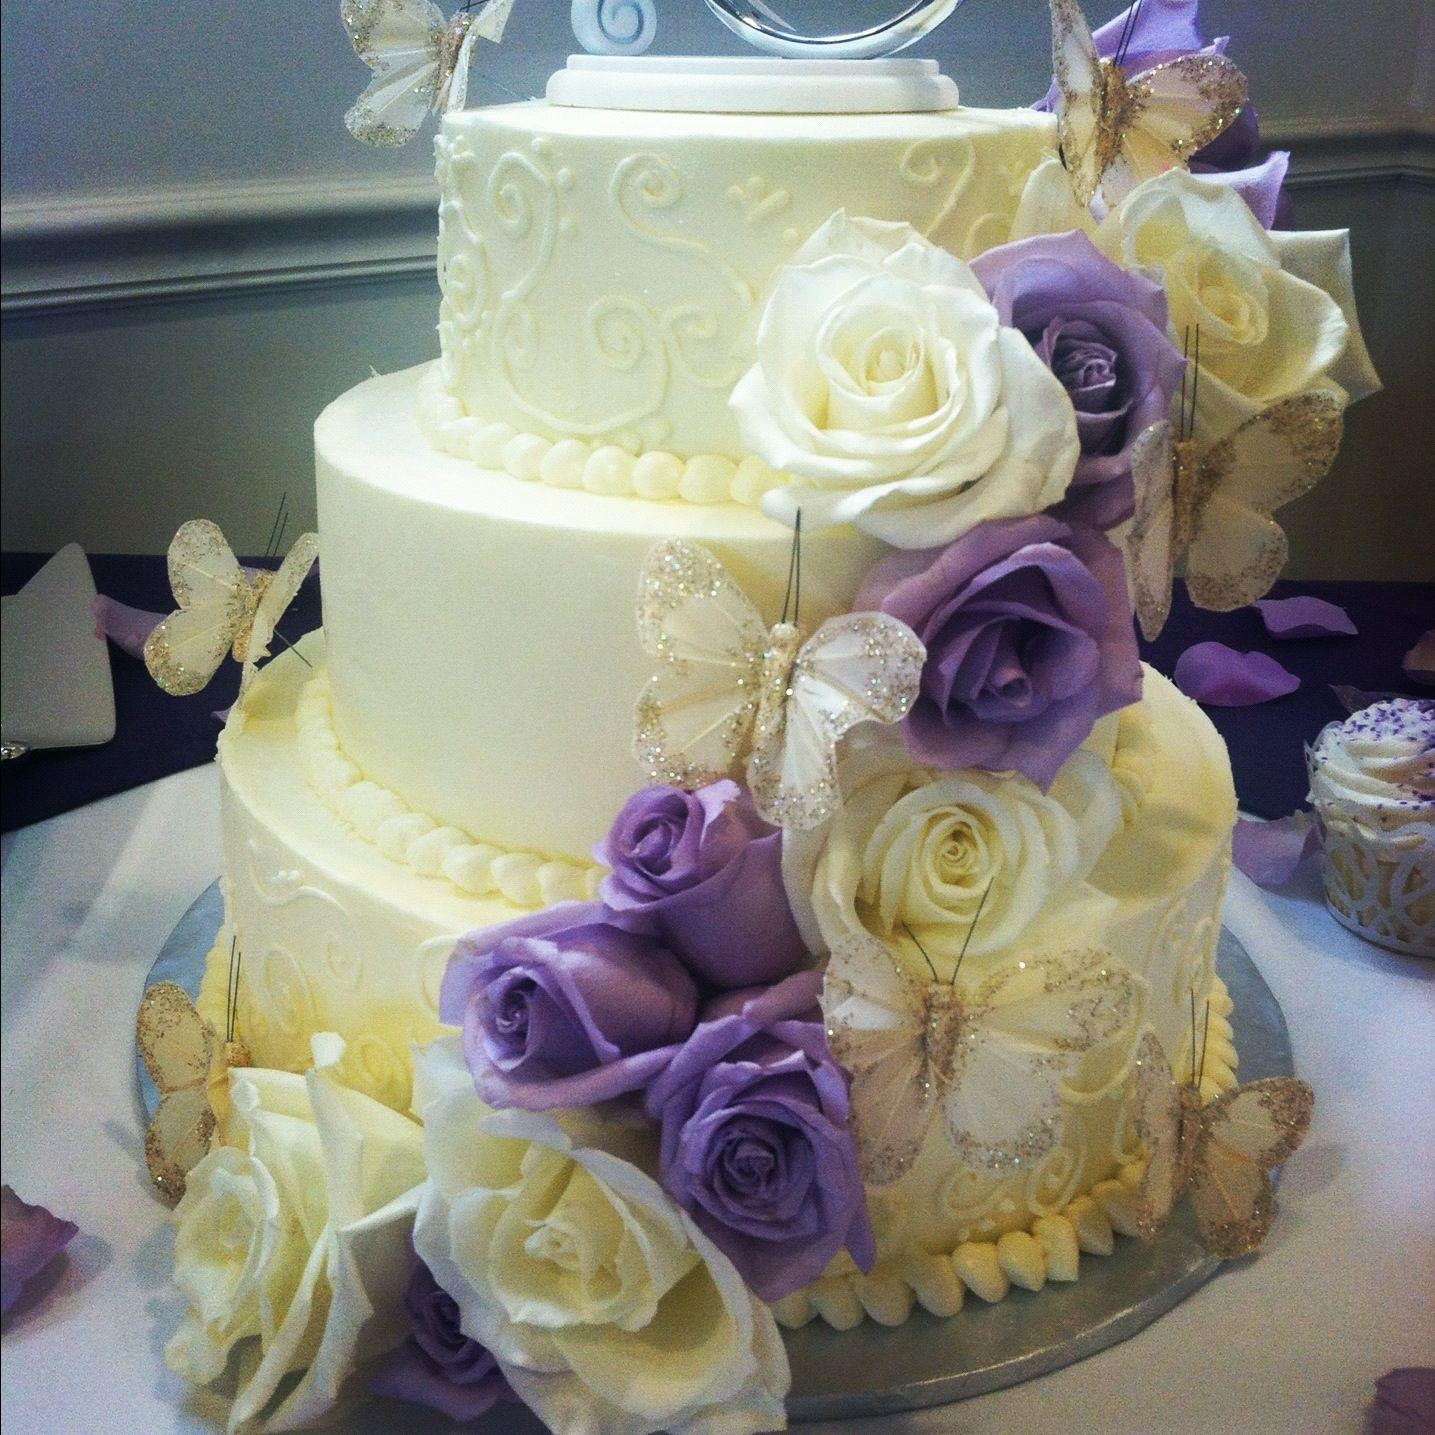 Purple and White Wedding Cake by Angela Welch